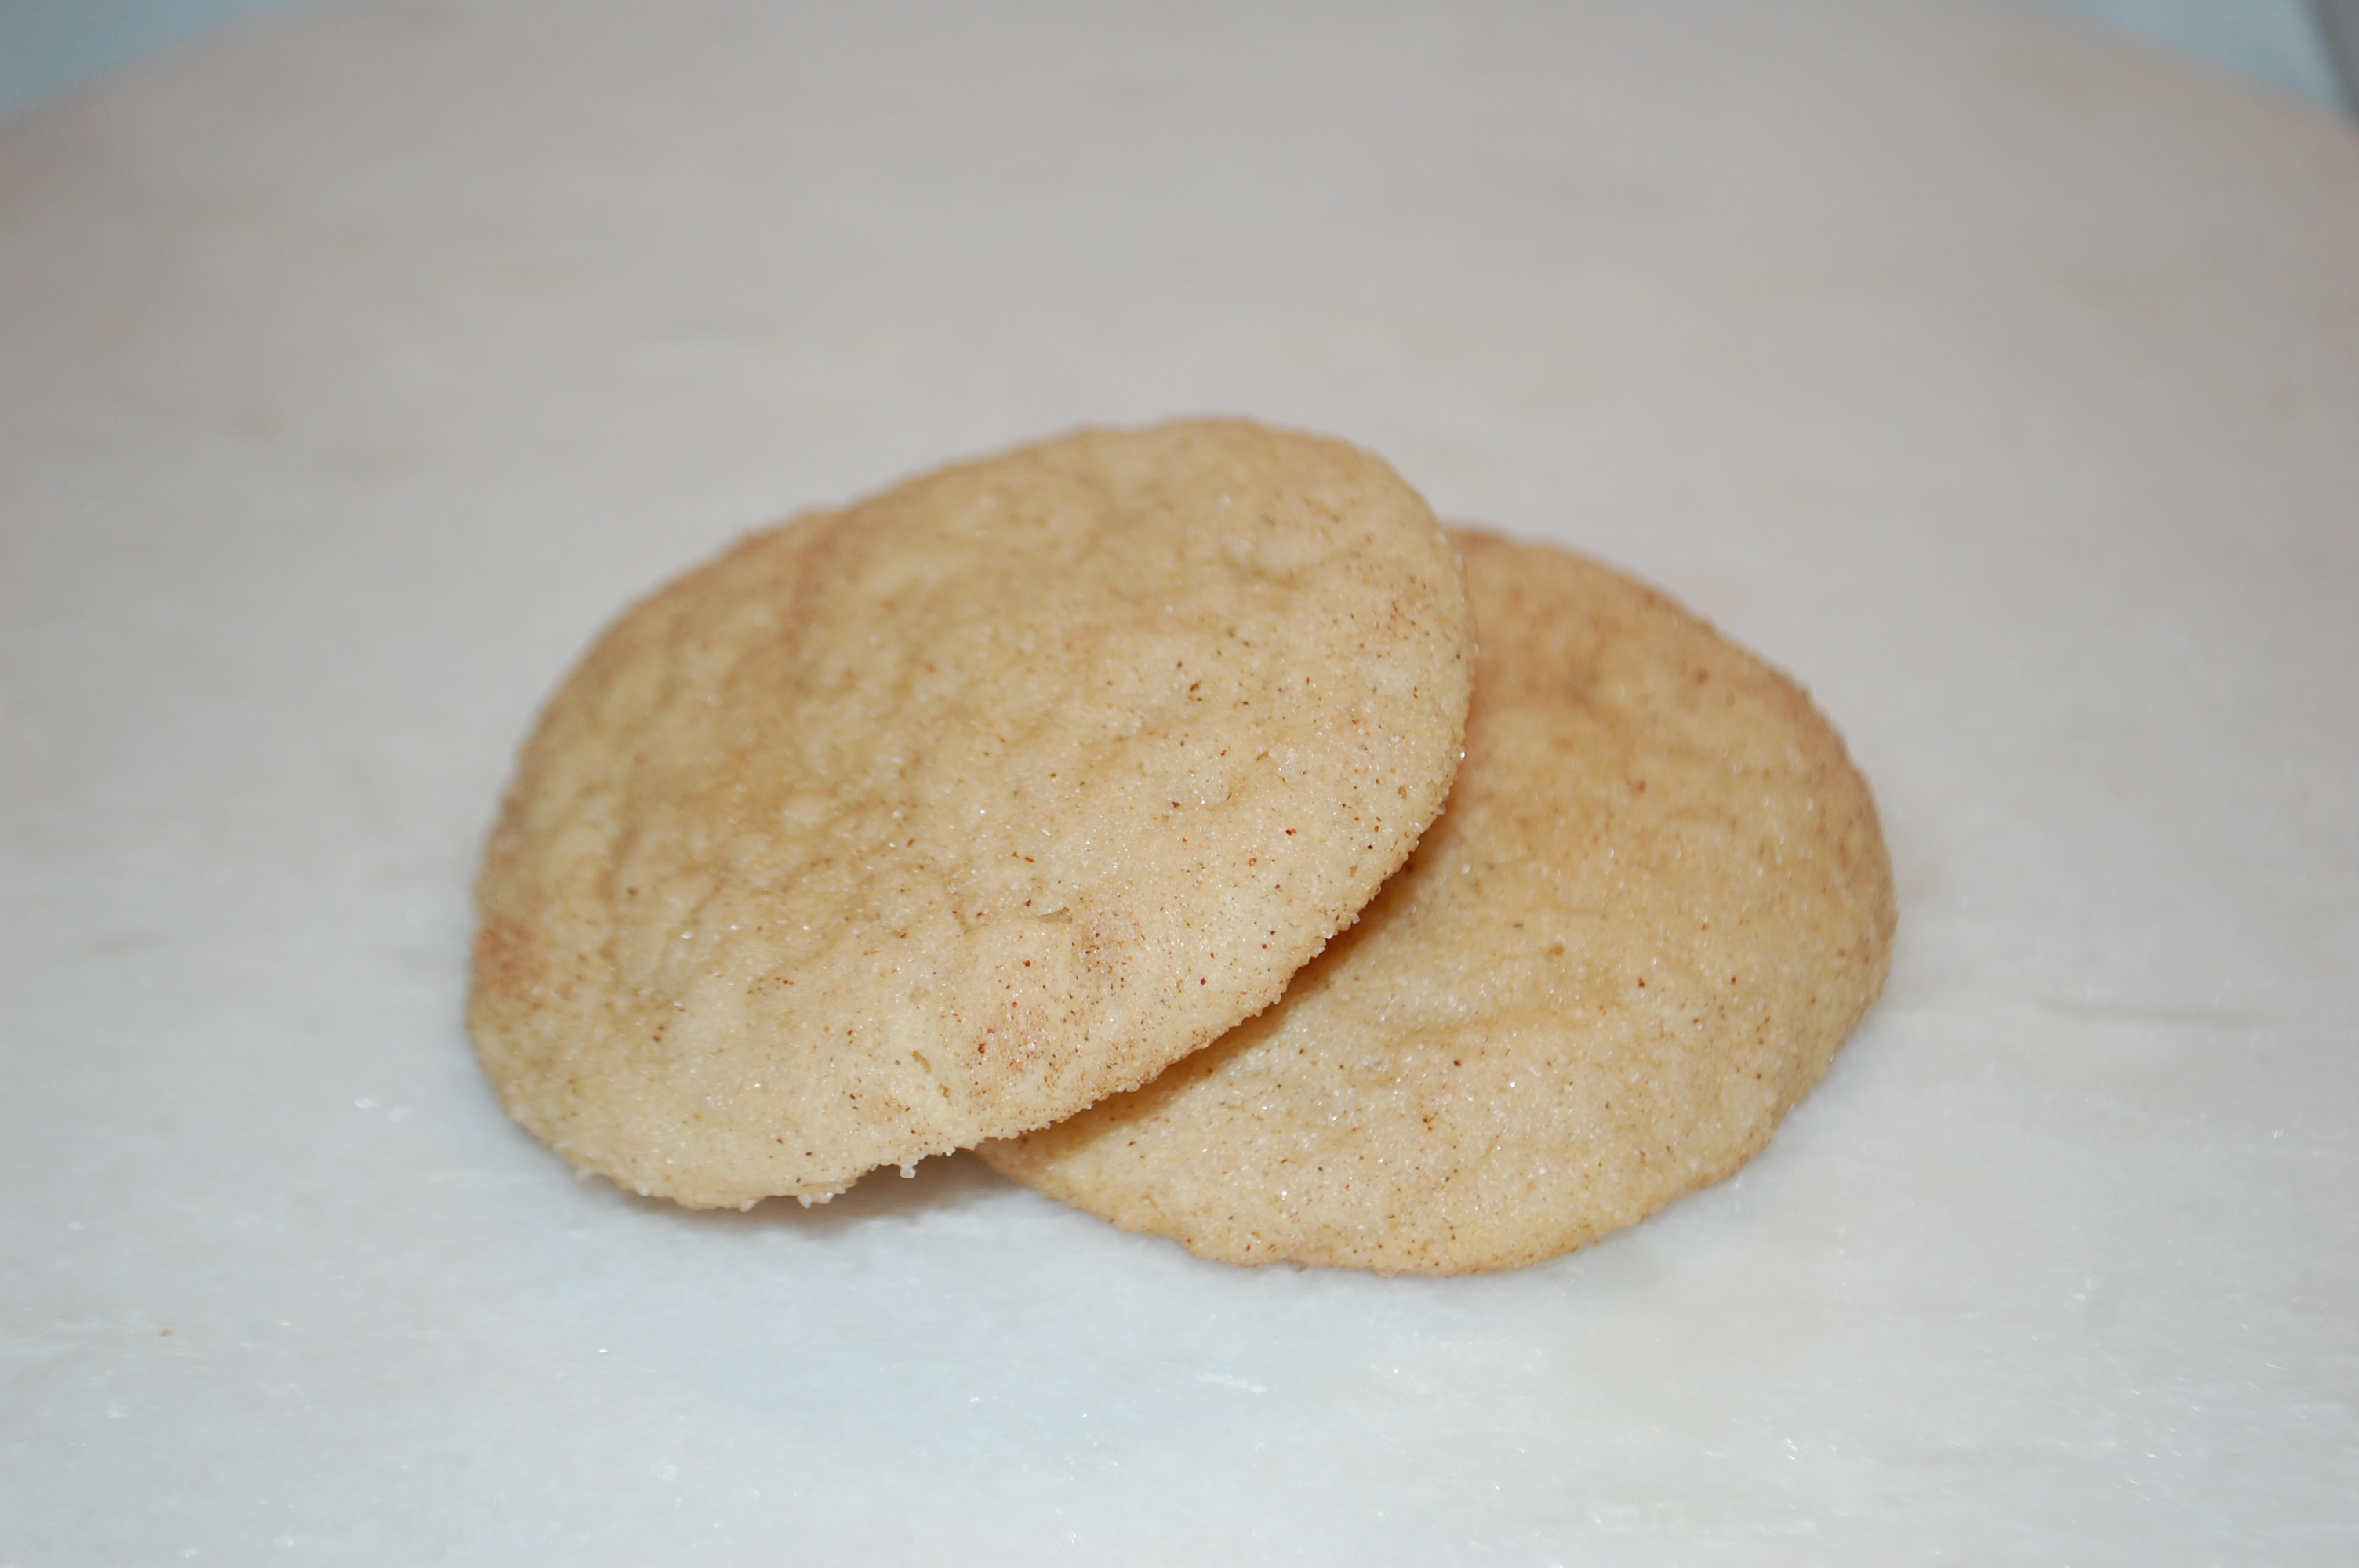 Soft sugar cookie rolled in cinnamon and sugar.